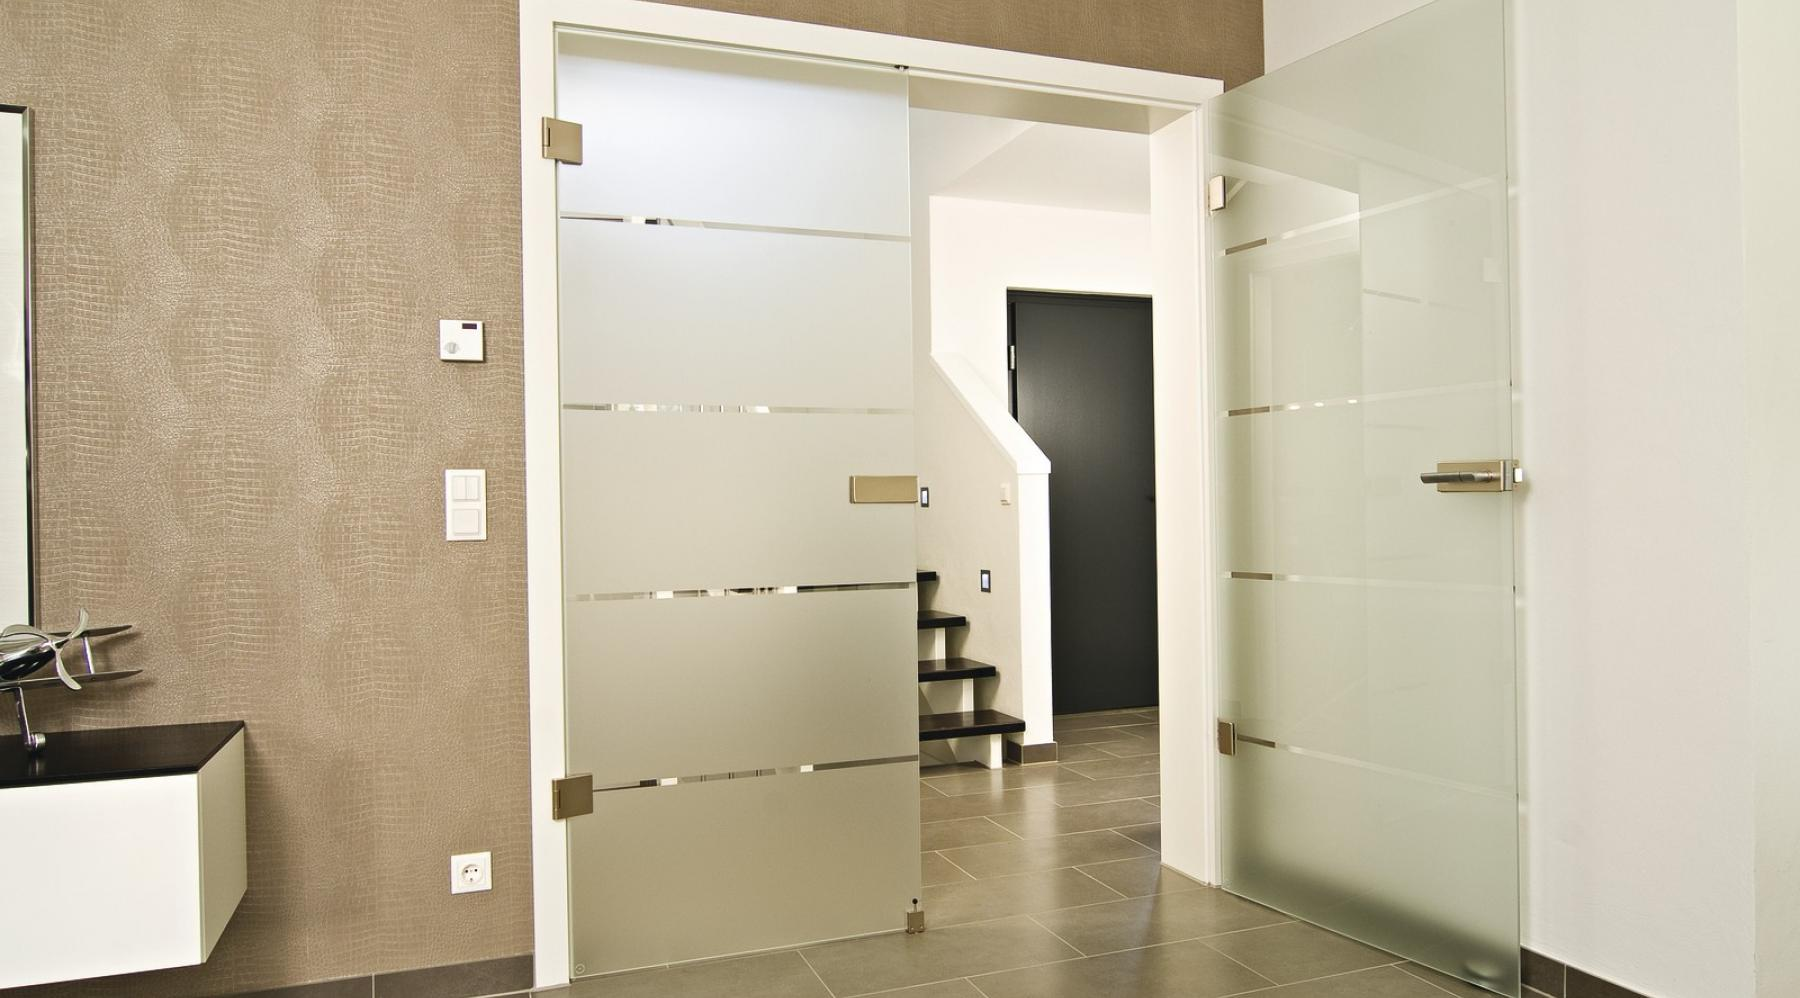 Galerie portes d 39 int rieur weigerding for Porte vitree interieure coulissante